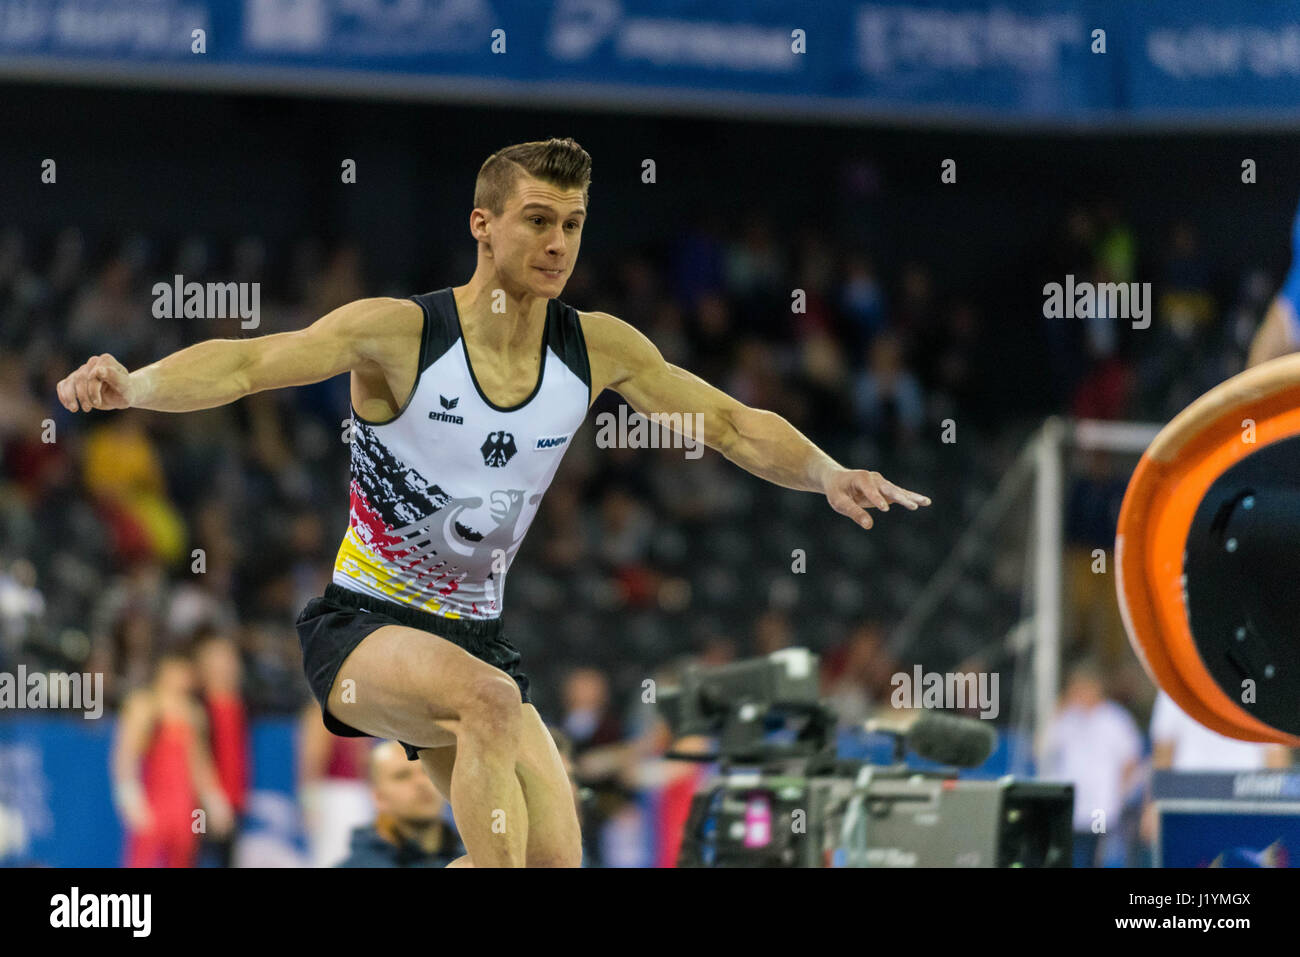 Cluj Napoca, Romania. 21st Apr, 2017. Lukas Dauser from Germany performs at the vault at the UEG European Championships Stock Photo